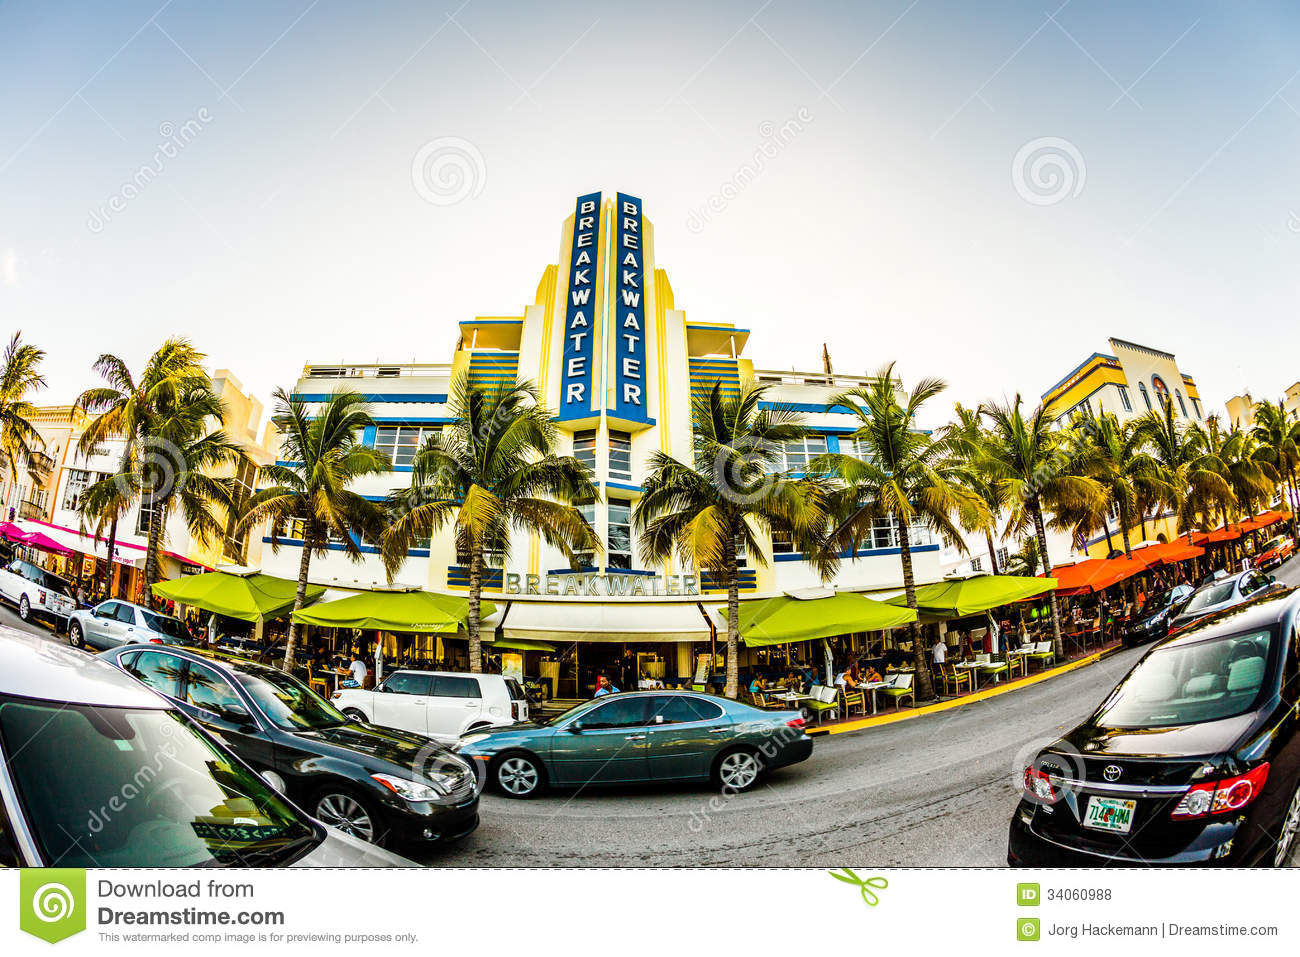 ocean drive in miami with famous art deco style breakwater